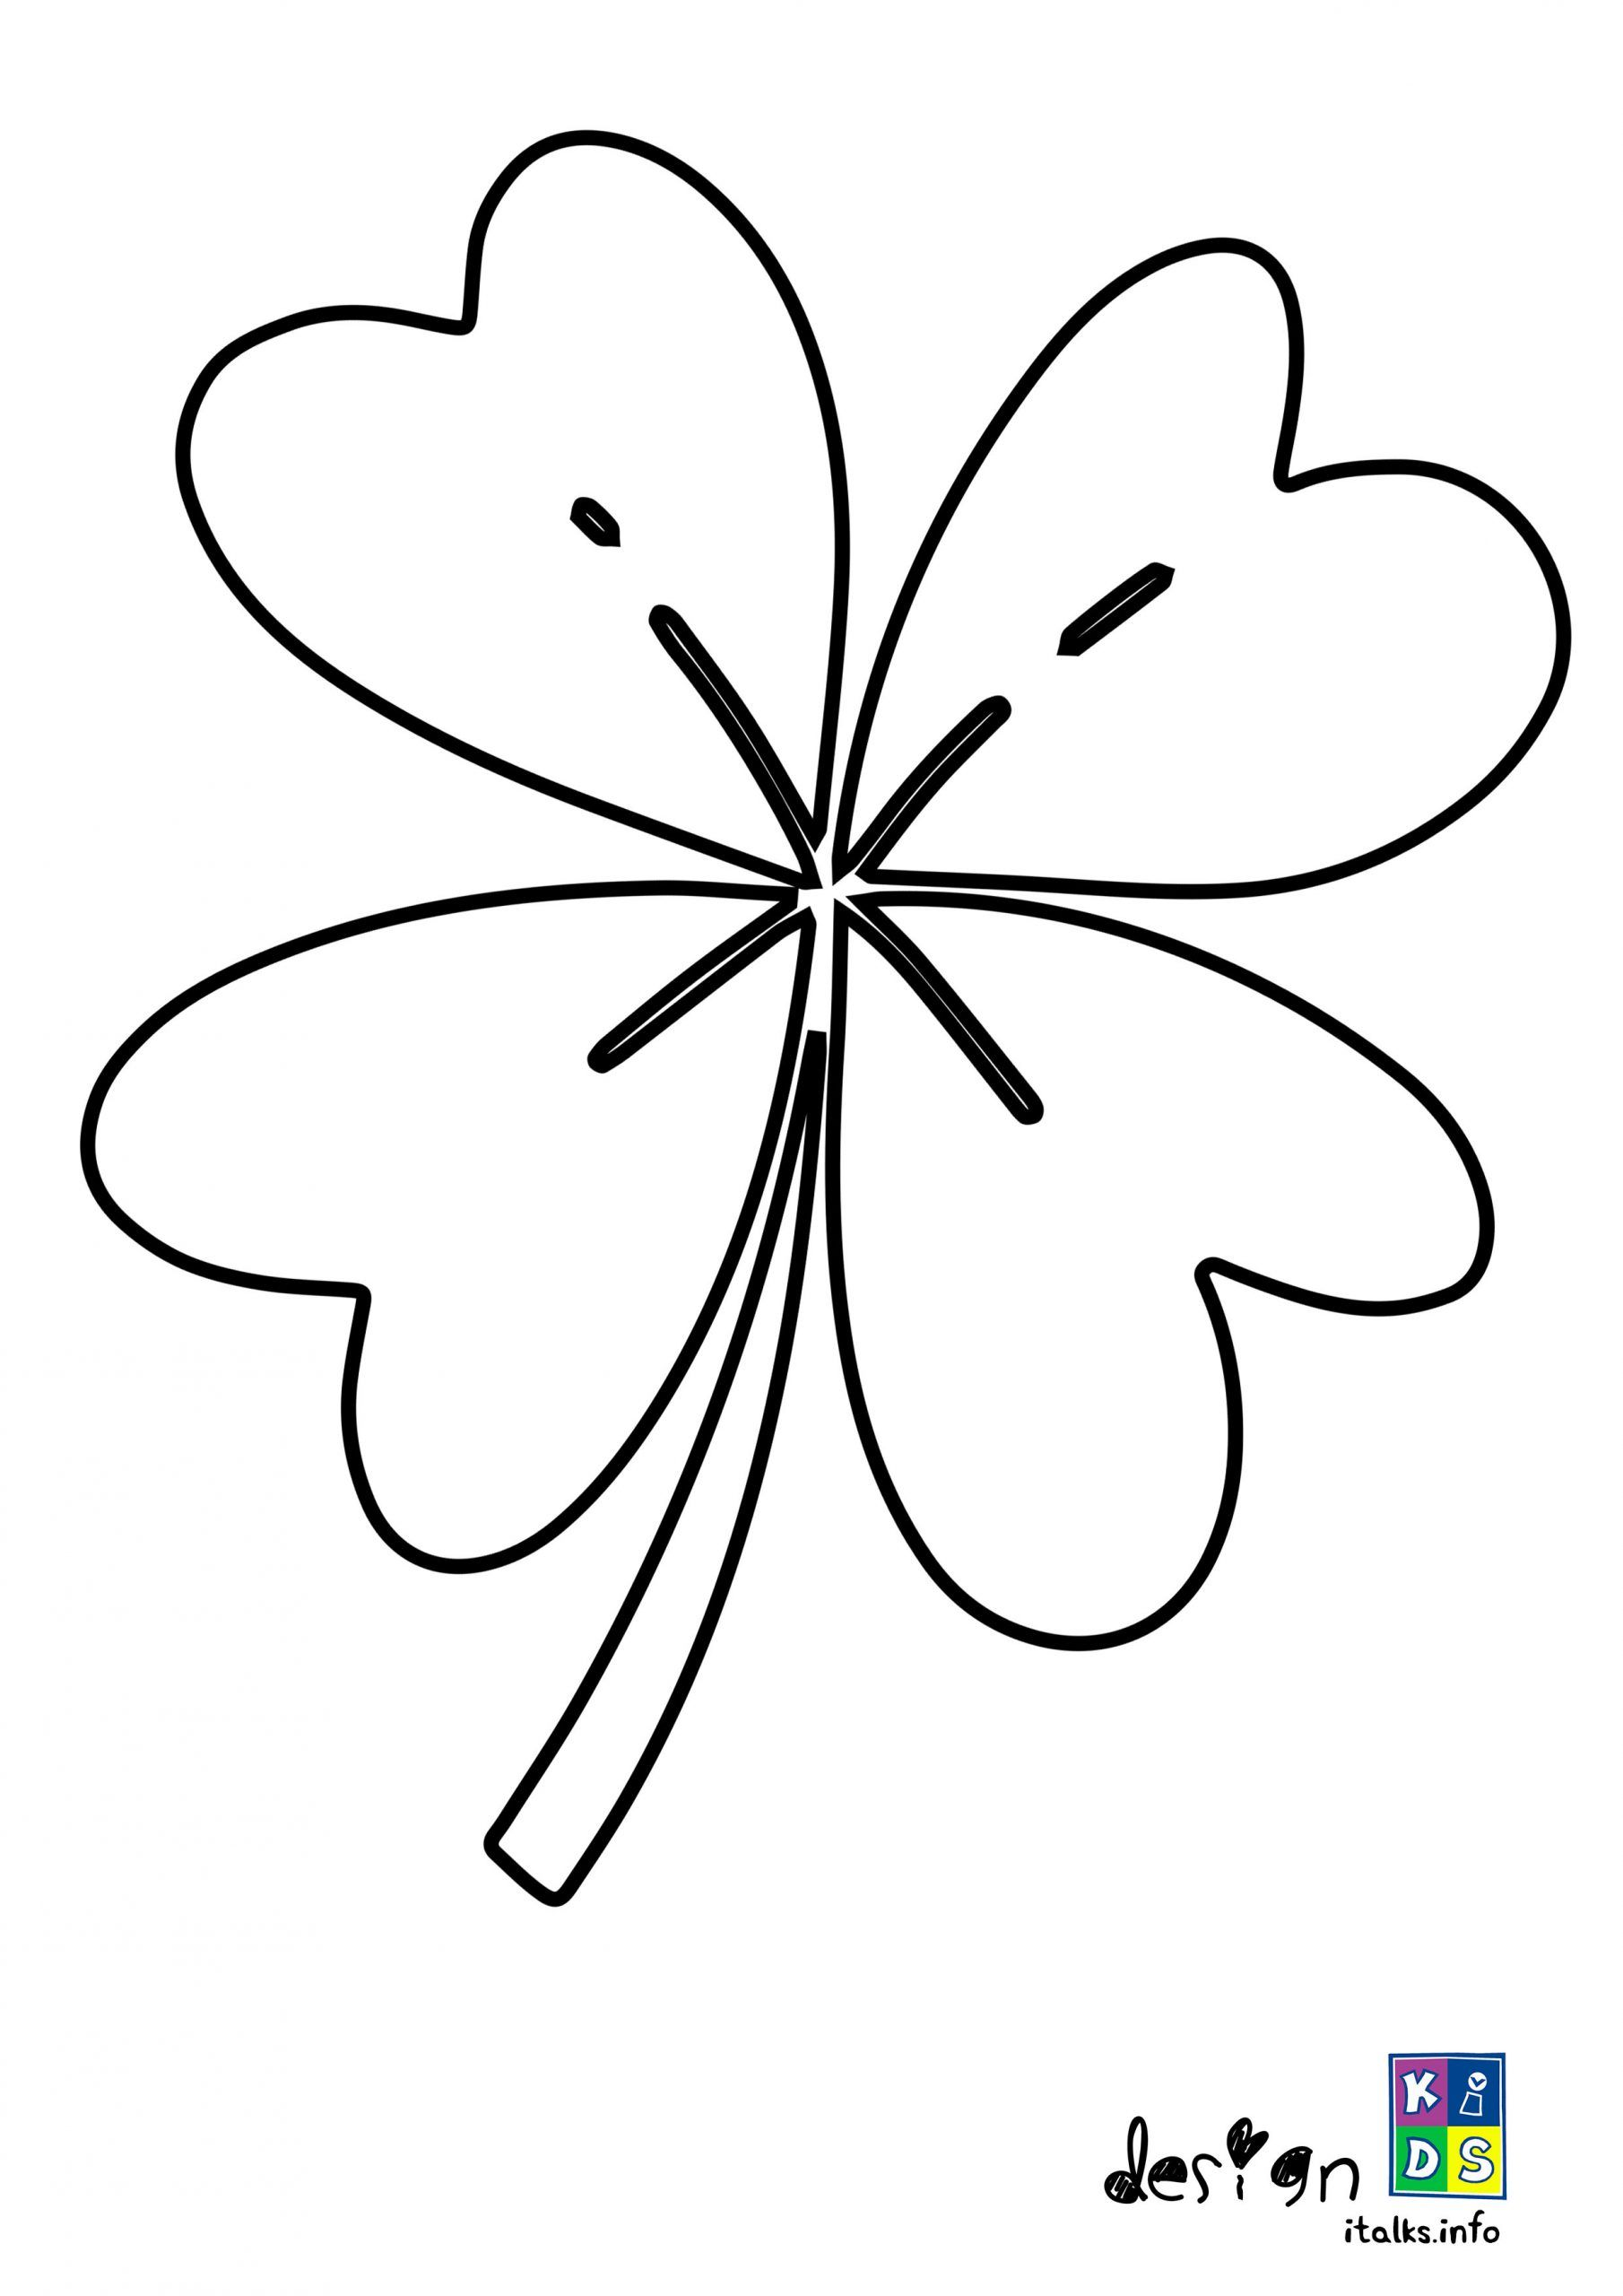 Shamrock Coloring Page in 2020 Coloring pages, Free